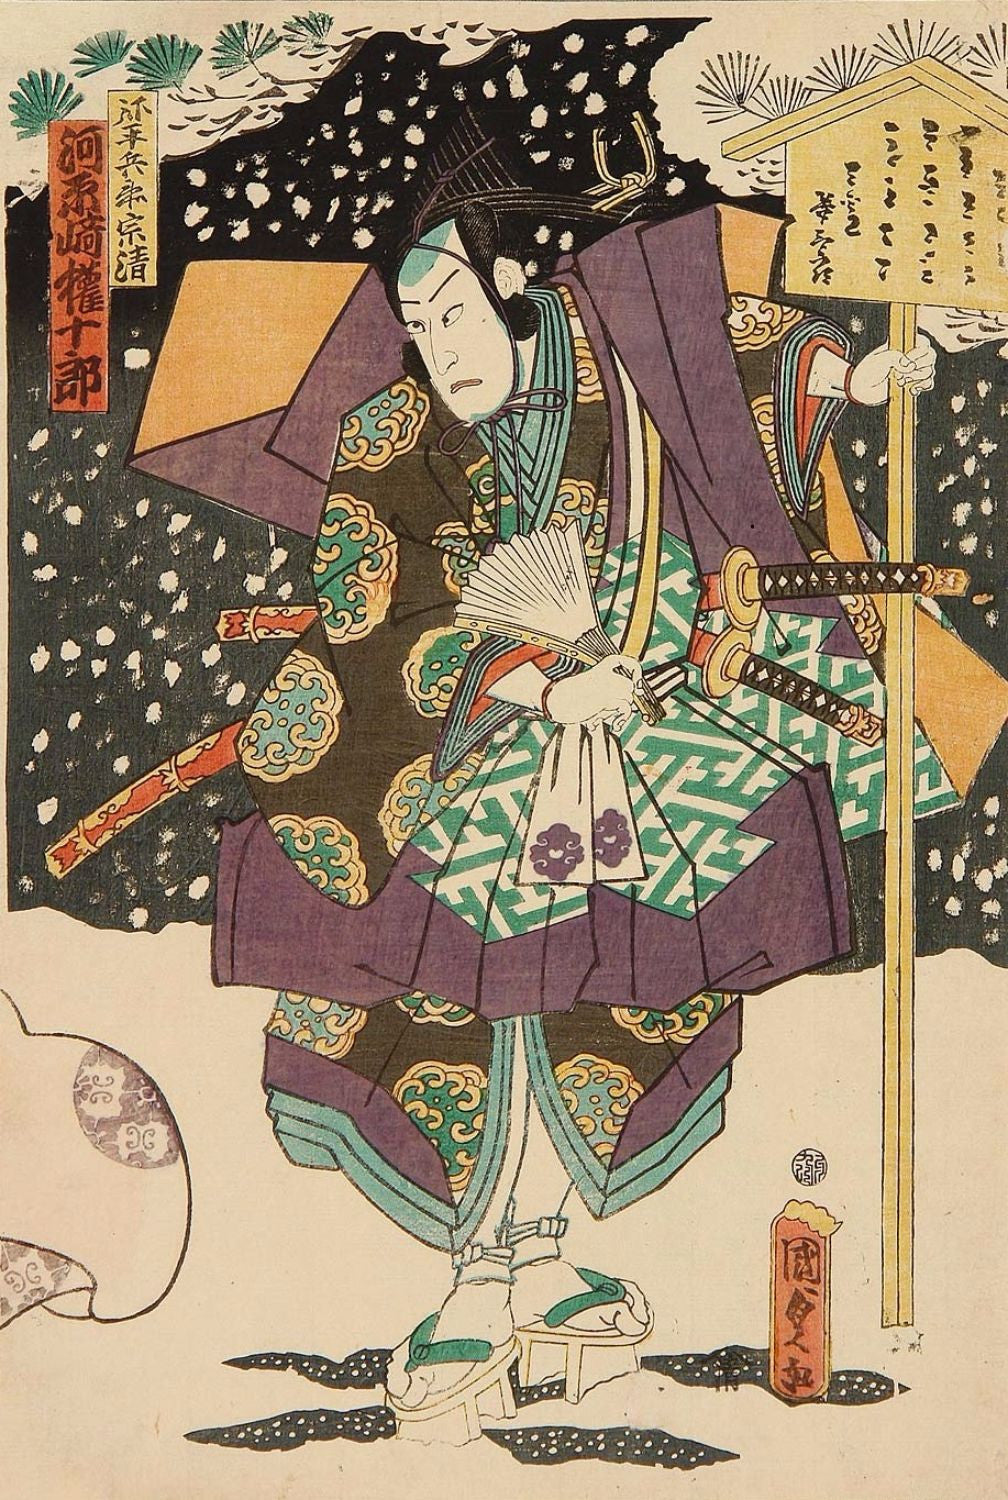 Utagawa Kunisada | Buy Posters, Frames, Canvas, Digital Art & Large Size Prints Of The Famous Old Master's Artworks